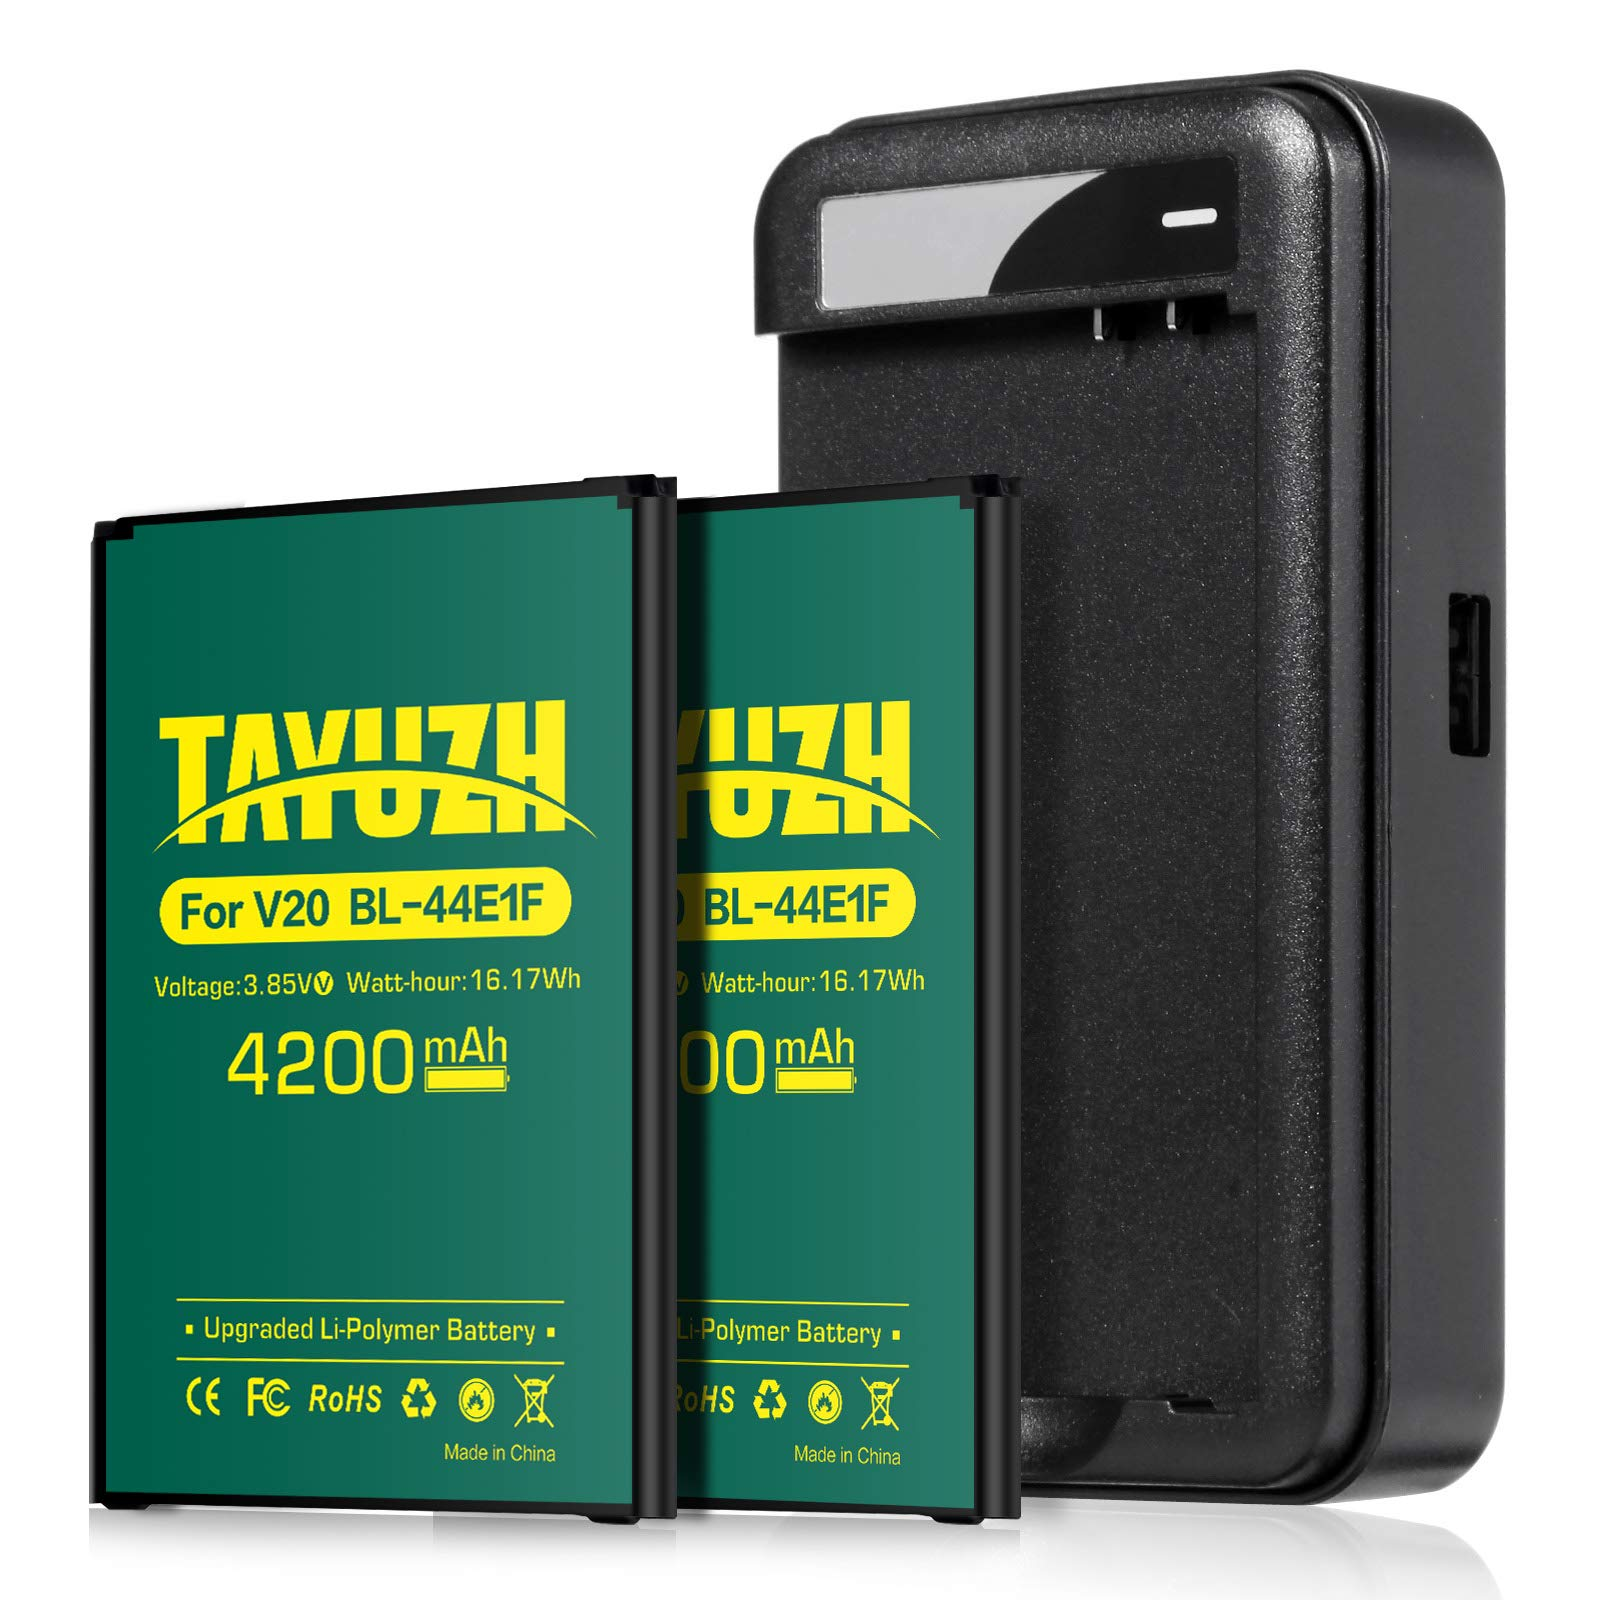 LG V20 Battery, [Upgraded] TAYUZH 2X 4200mAh Replacement Li-Polymer Battery BL-44E1F with Spare Charger for LG V20 H910 H918 LS997 US996 VS995 | V20 Spare Battery [24 Month Warranty] by TAYUZH